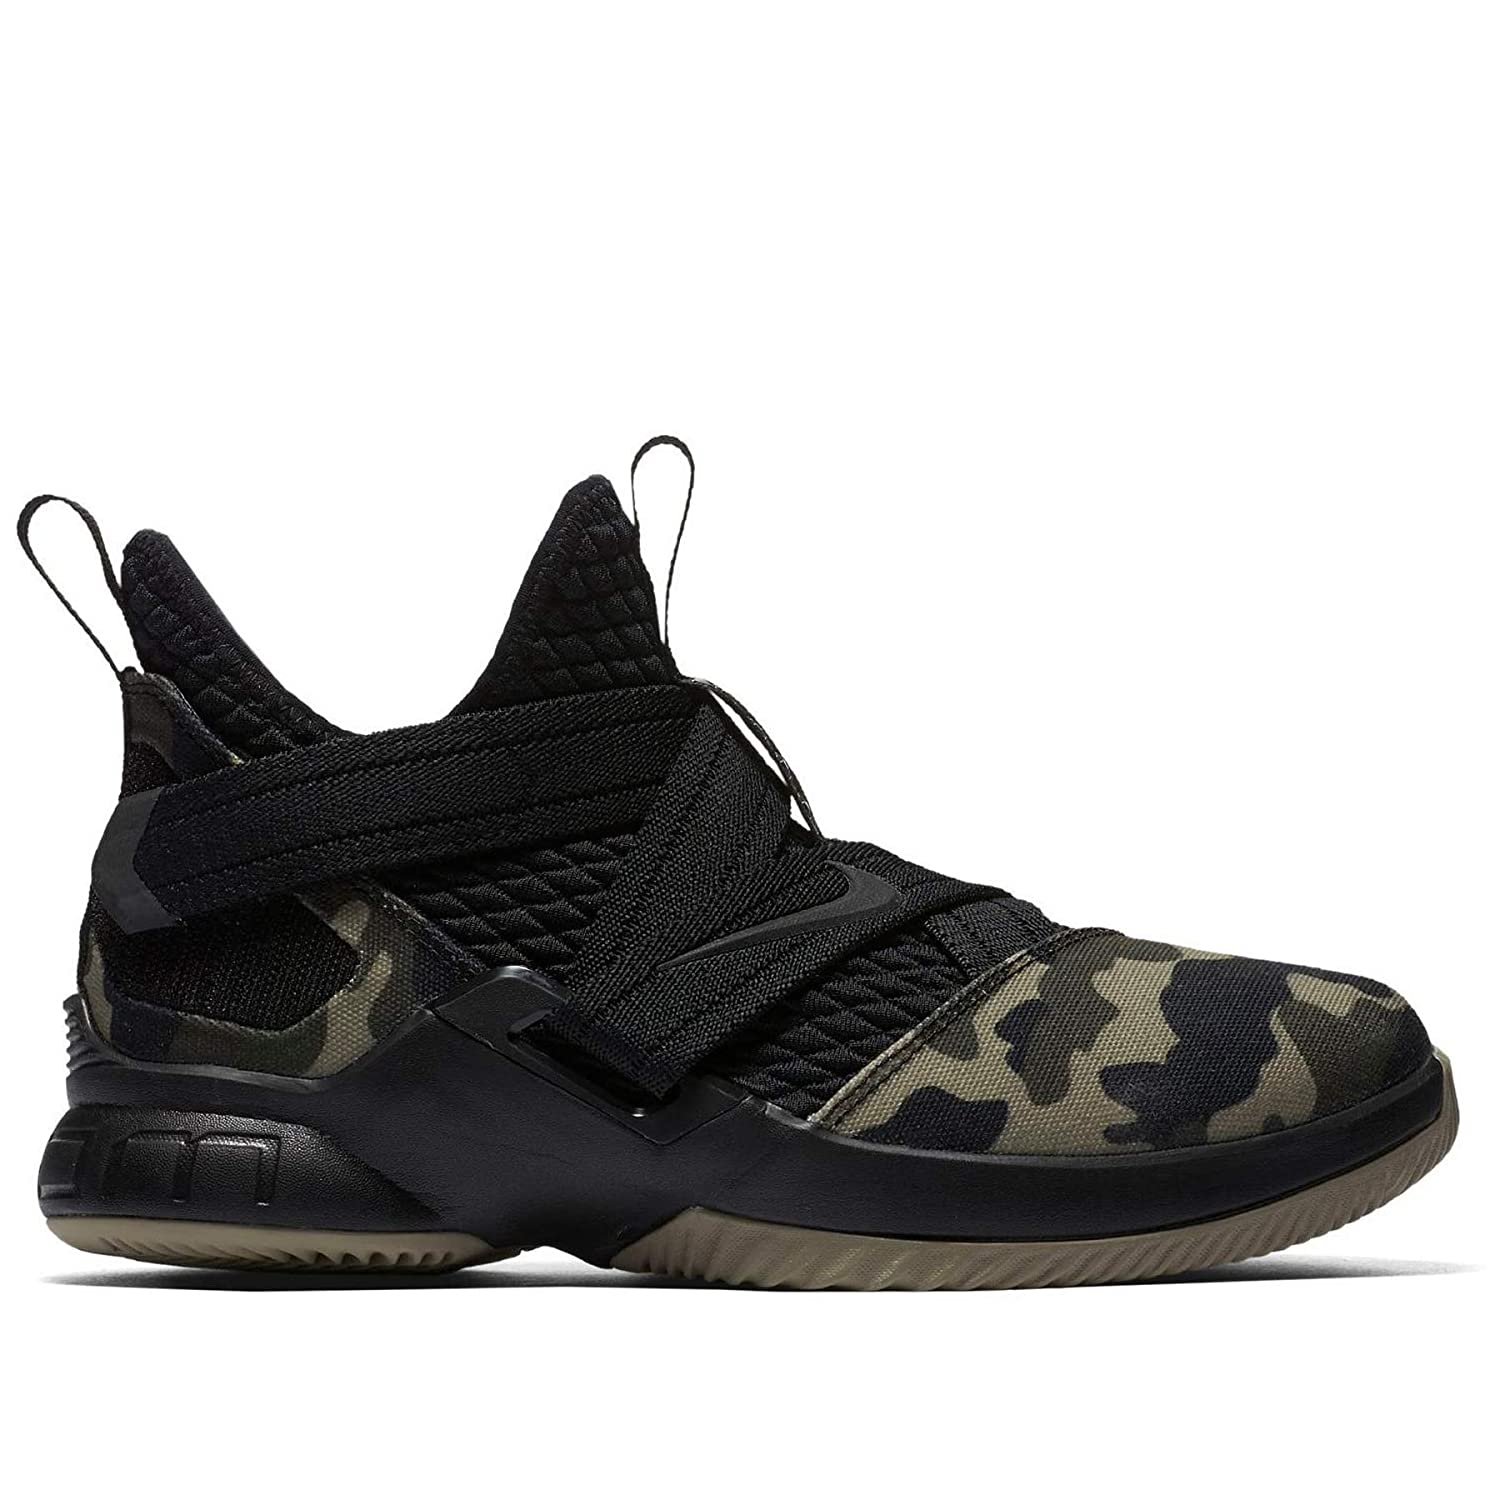 separation shoes 4be71 c7701 Amazon.com | NIKE Lebron Soldier XII SFG (GS) Big Kids ...